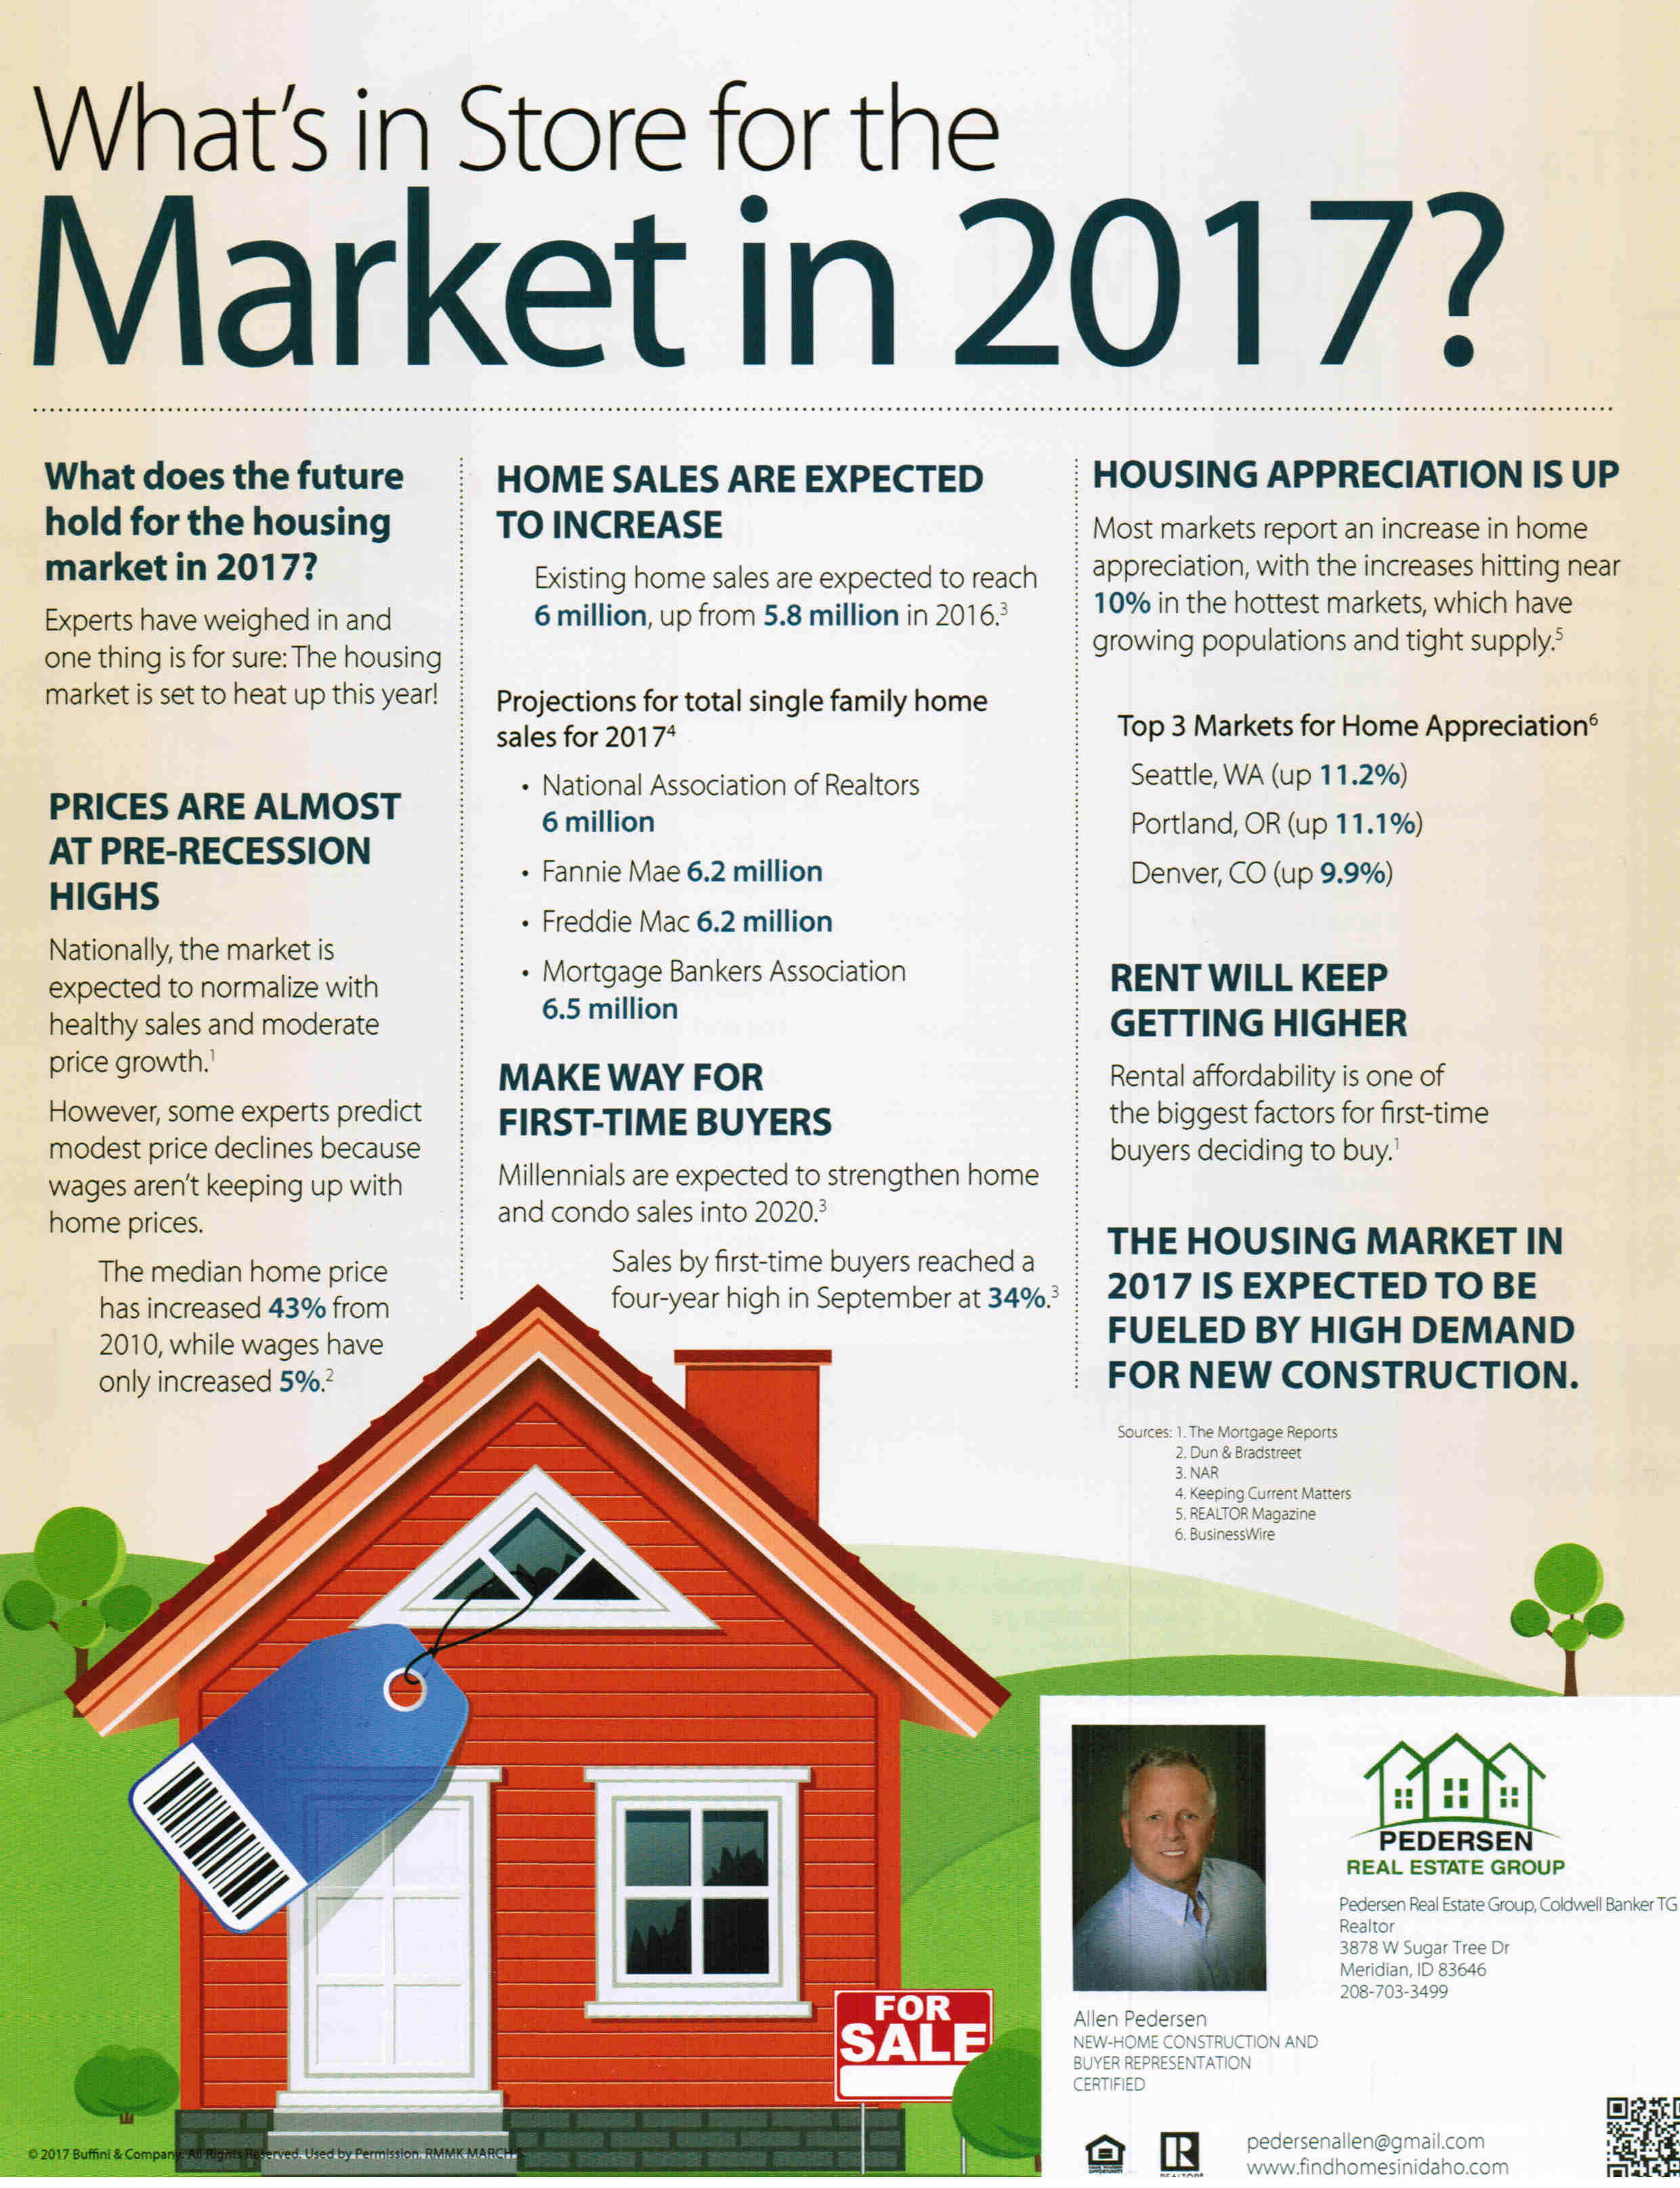 The Housing Market Forecast for 2017